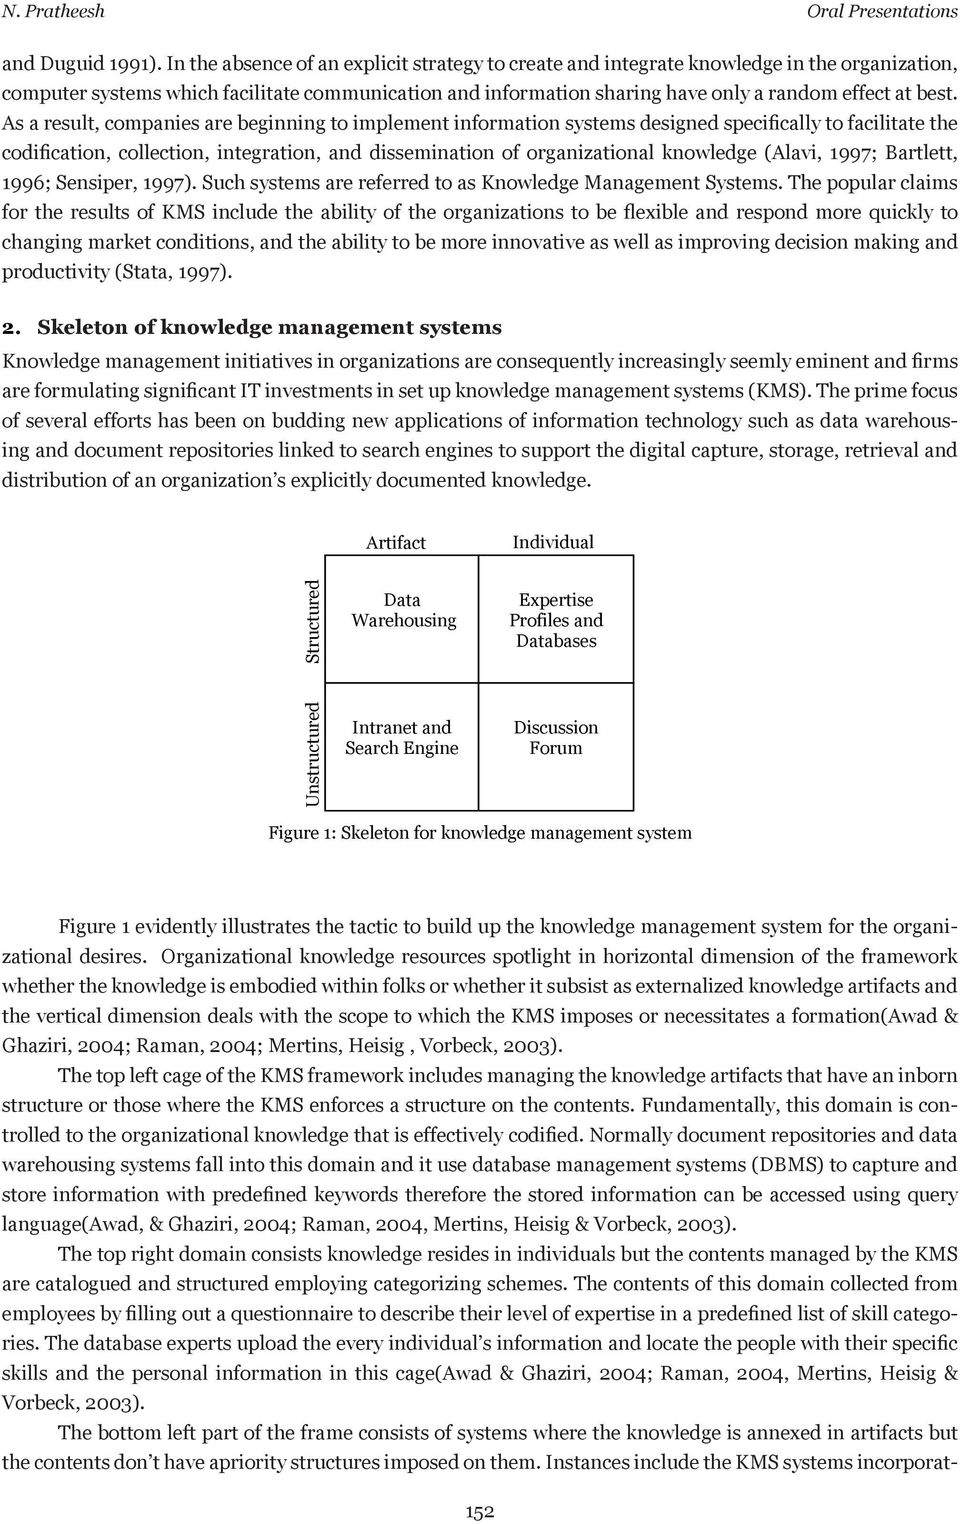 As a result, companies are beginning to implement information systems designed specifically to facilitate the codification, collection, integration, and dissemination of organizational knowledge